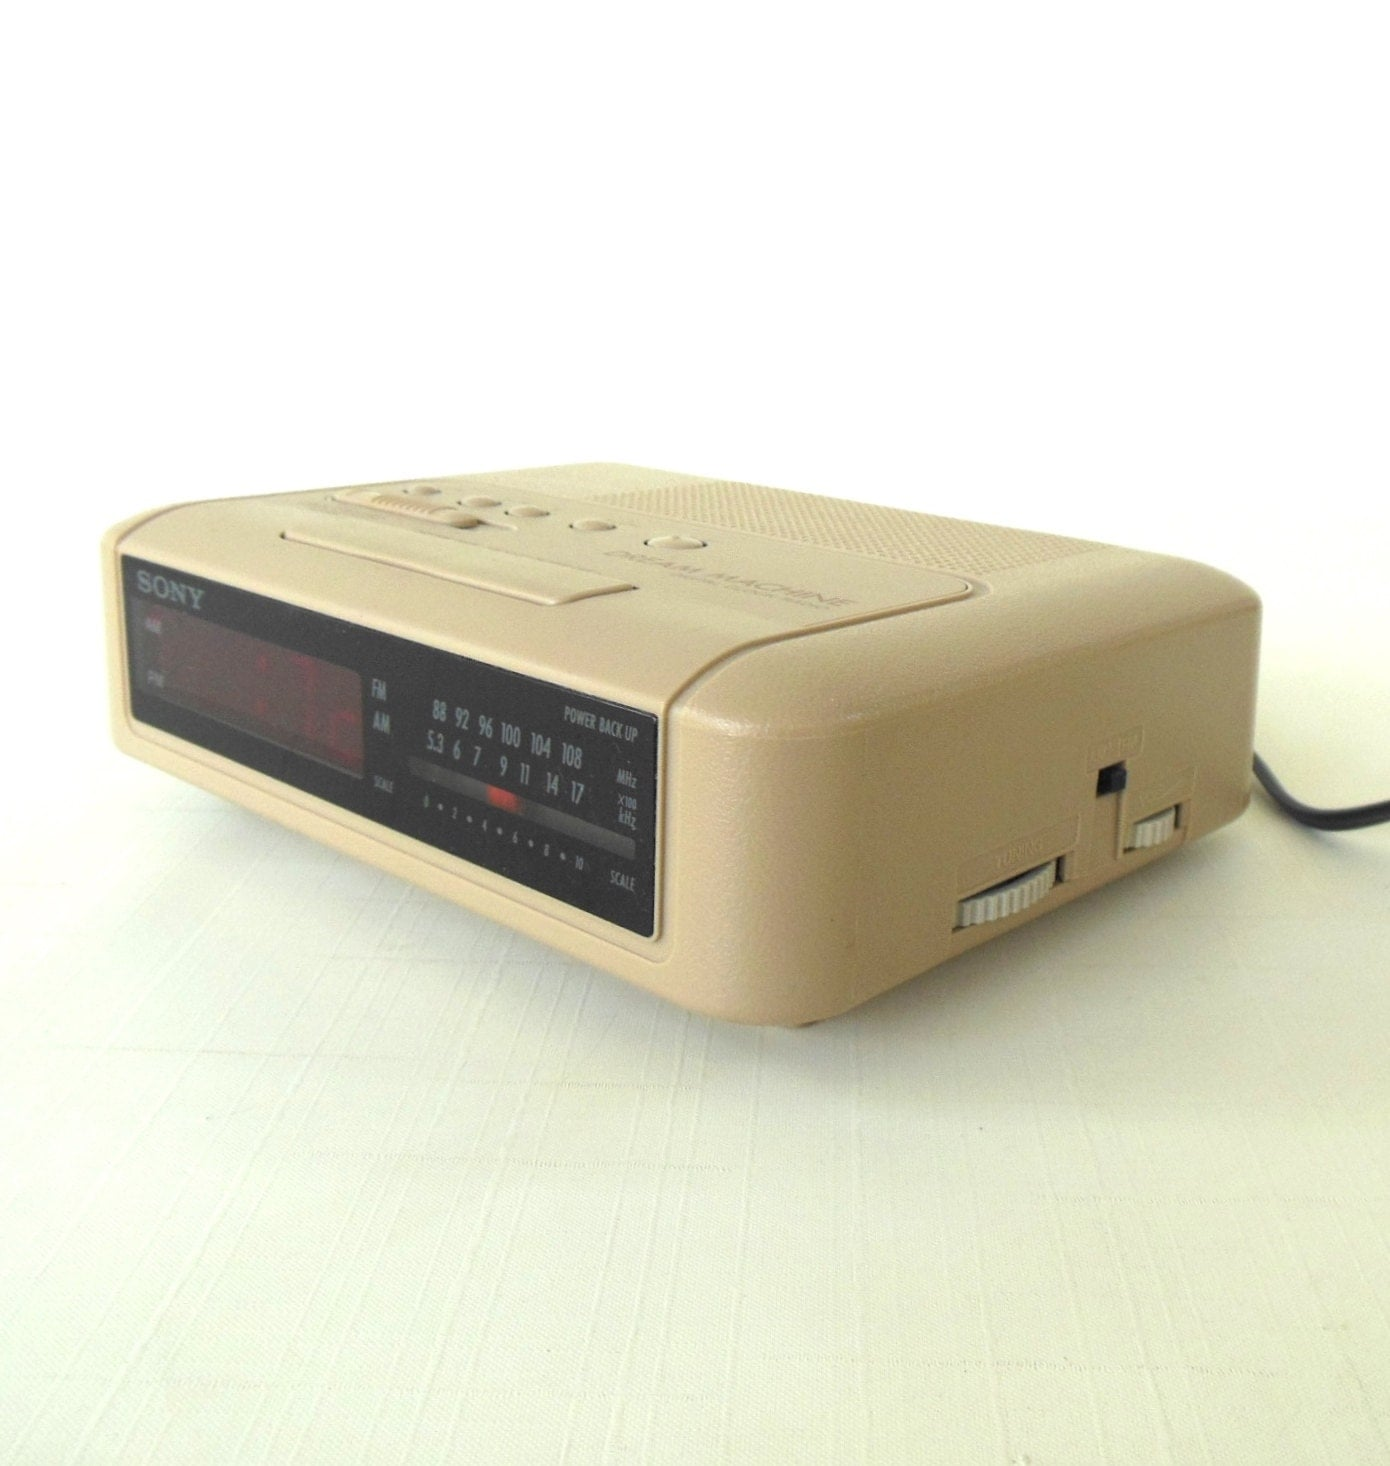 sony dream machine alarm clock radio icf c240 beige. Black Bedroom Furniture Sets. Home Design Ideas